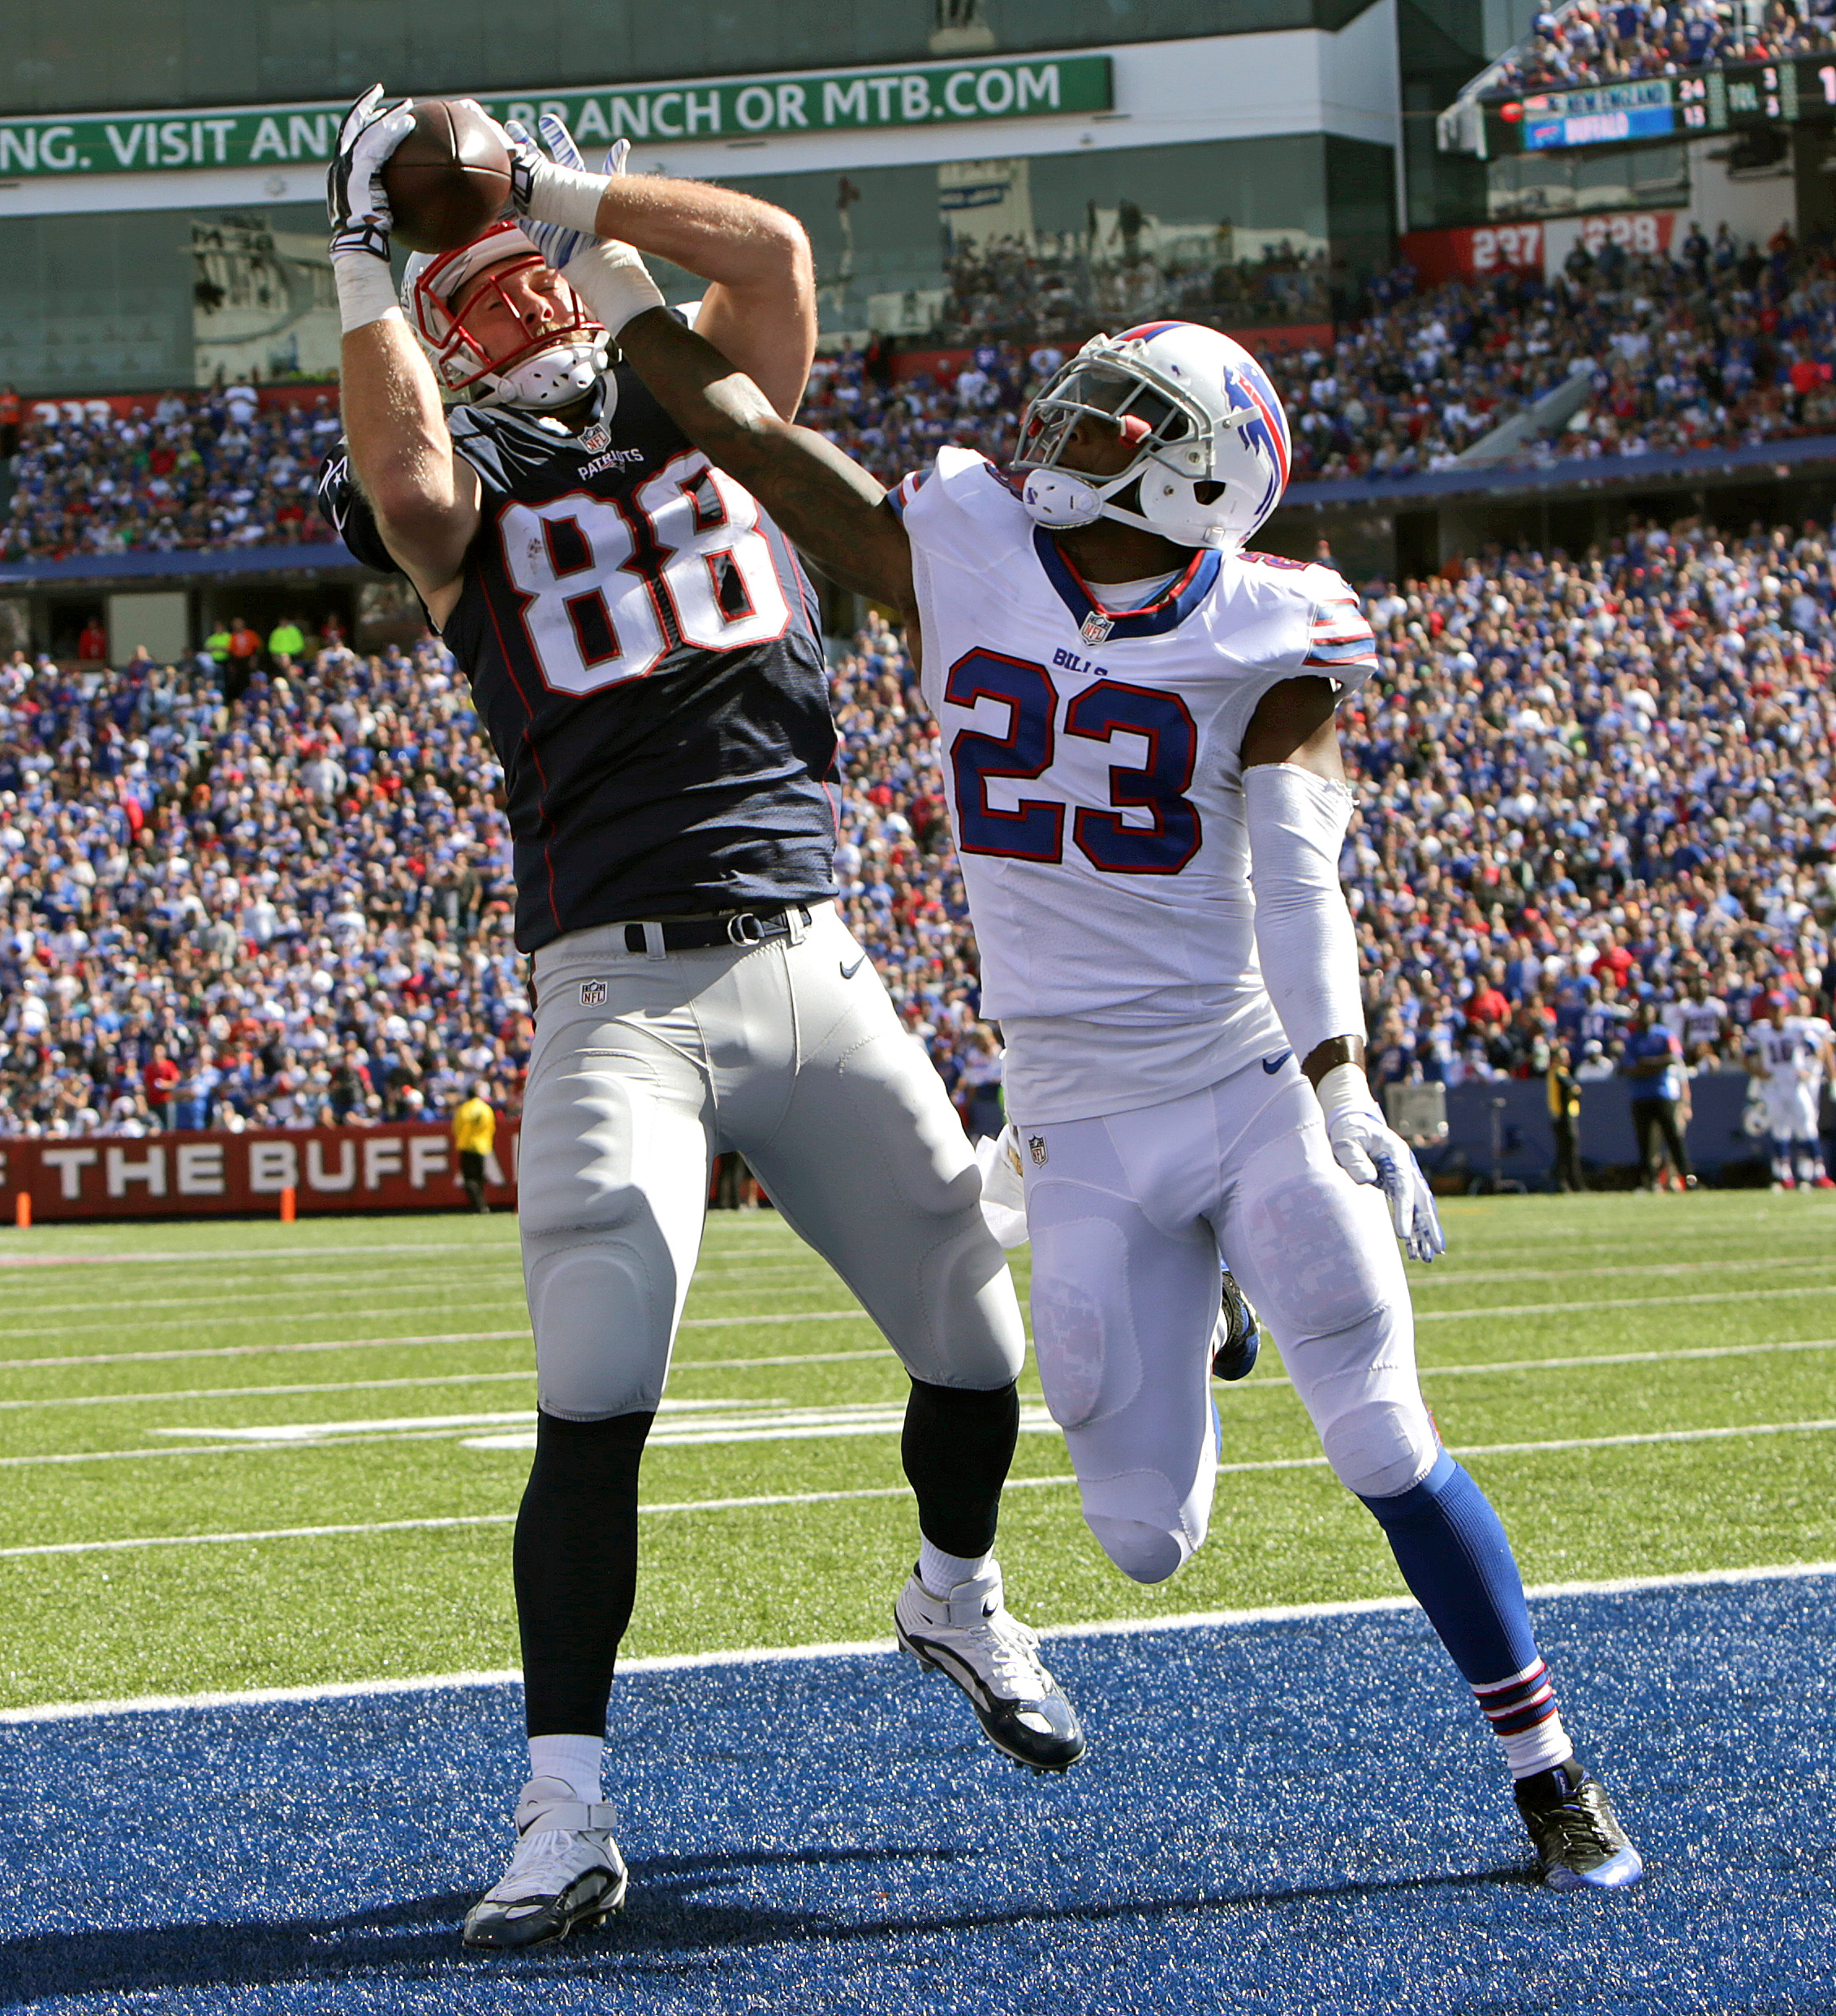 Patriots TE Scott Chandler playing at home on the road - The ...